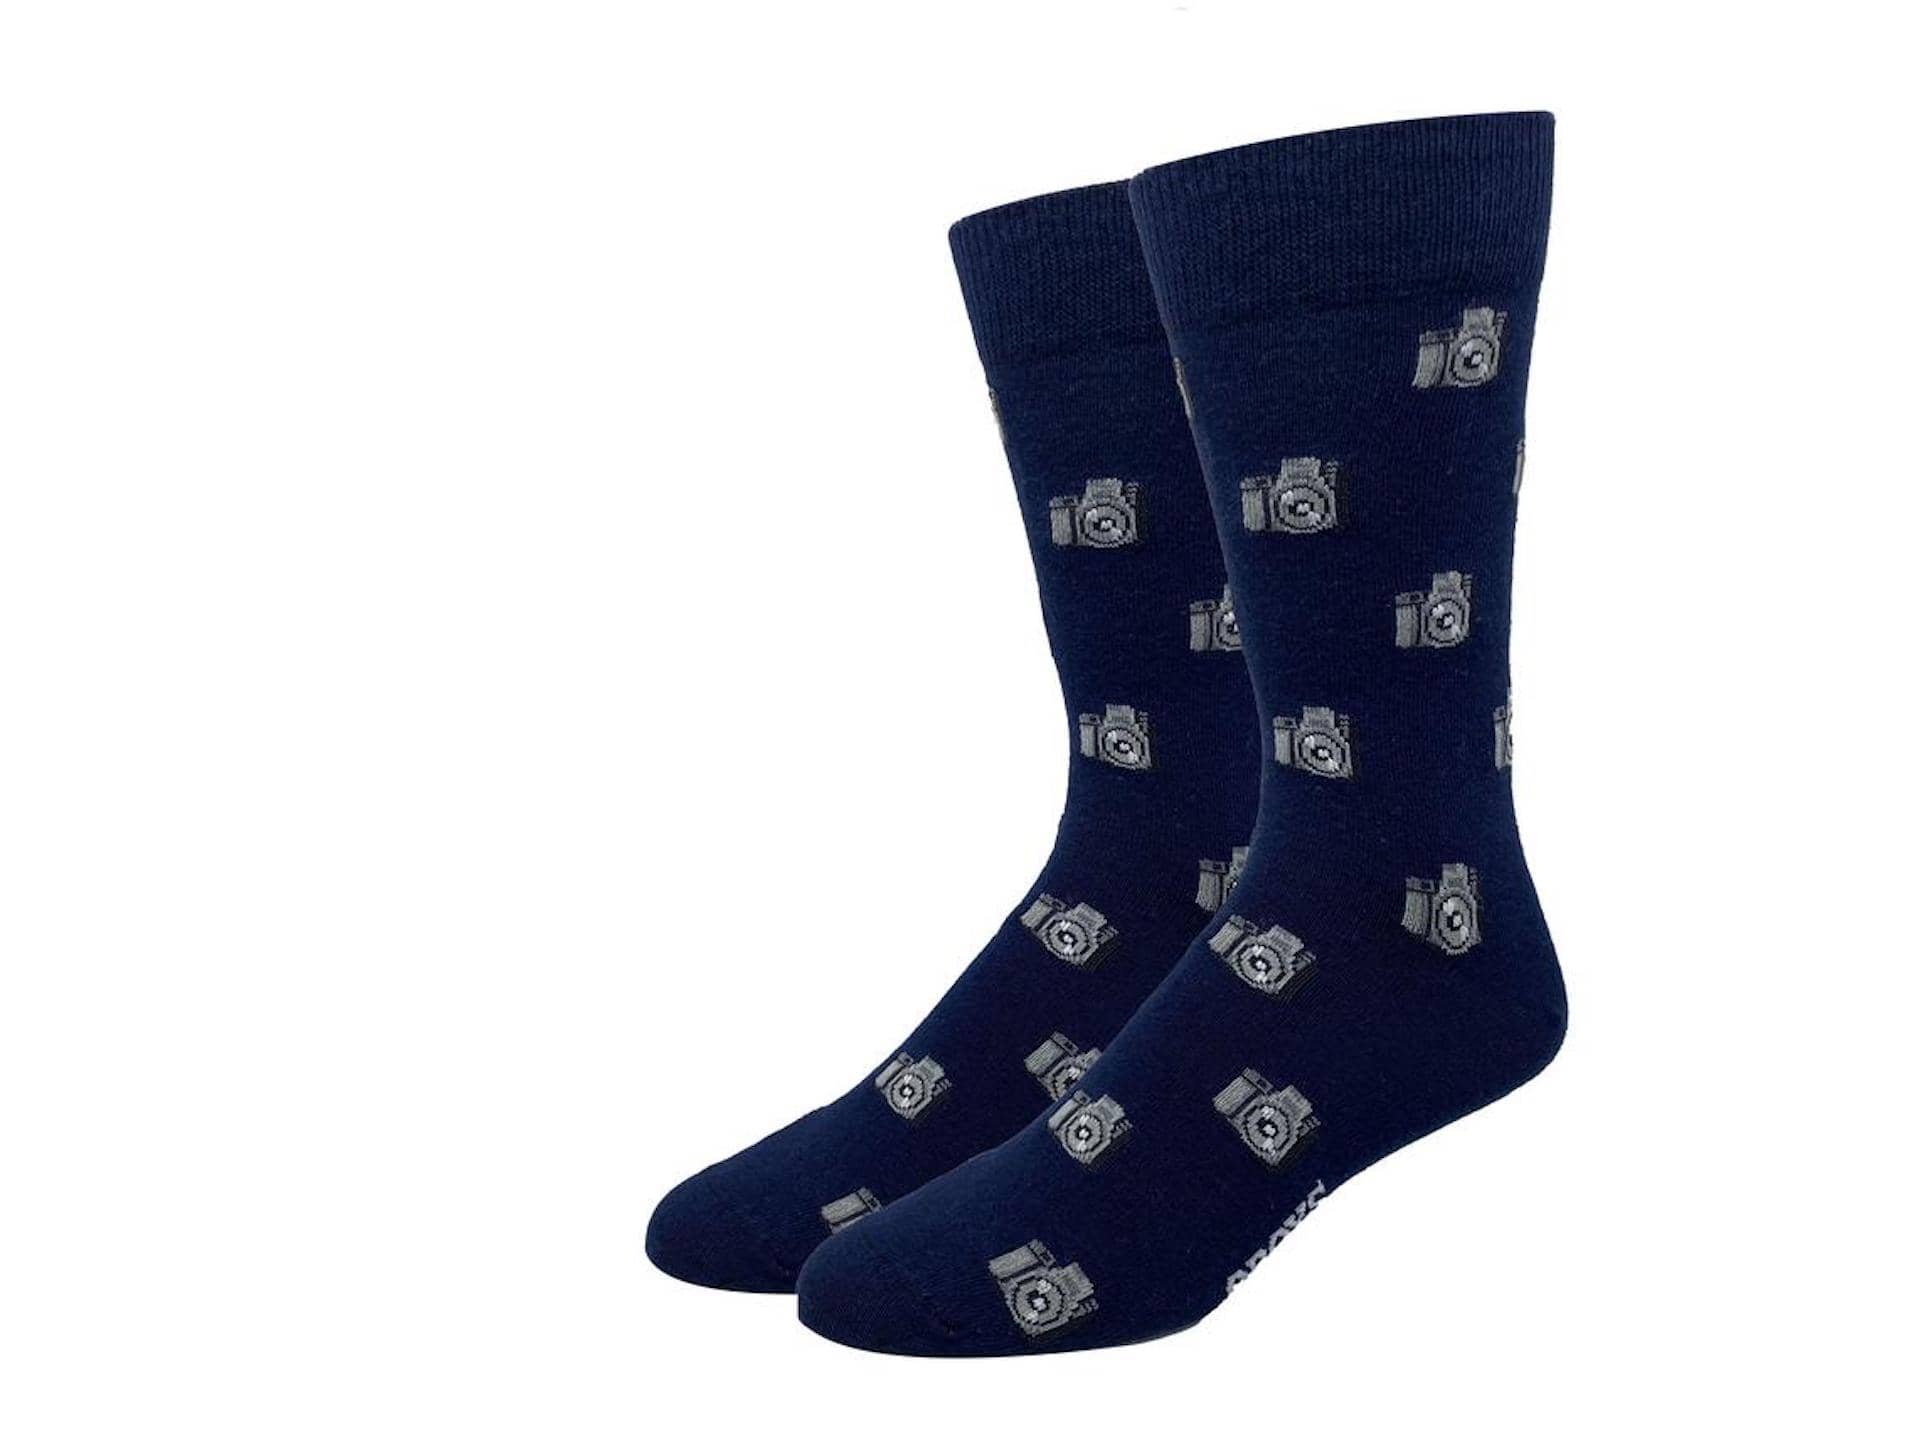 Best Photo Gifts for Photographers - Ideas Photographer Lovers - Photography Socks